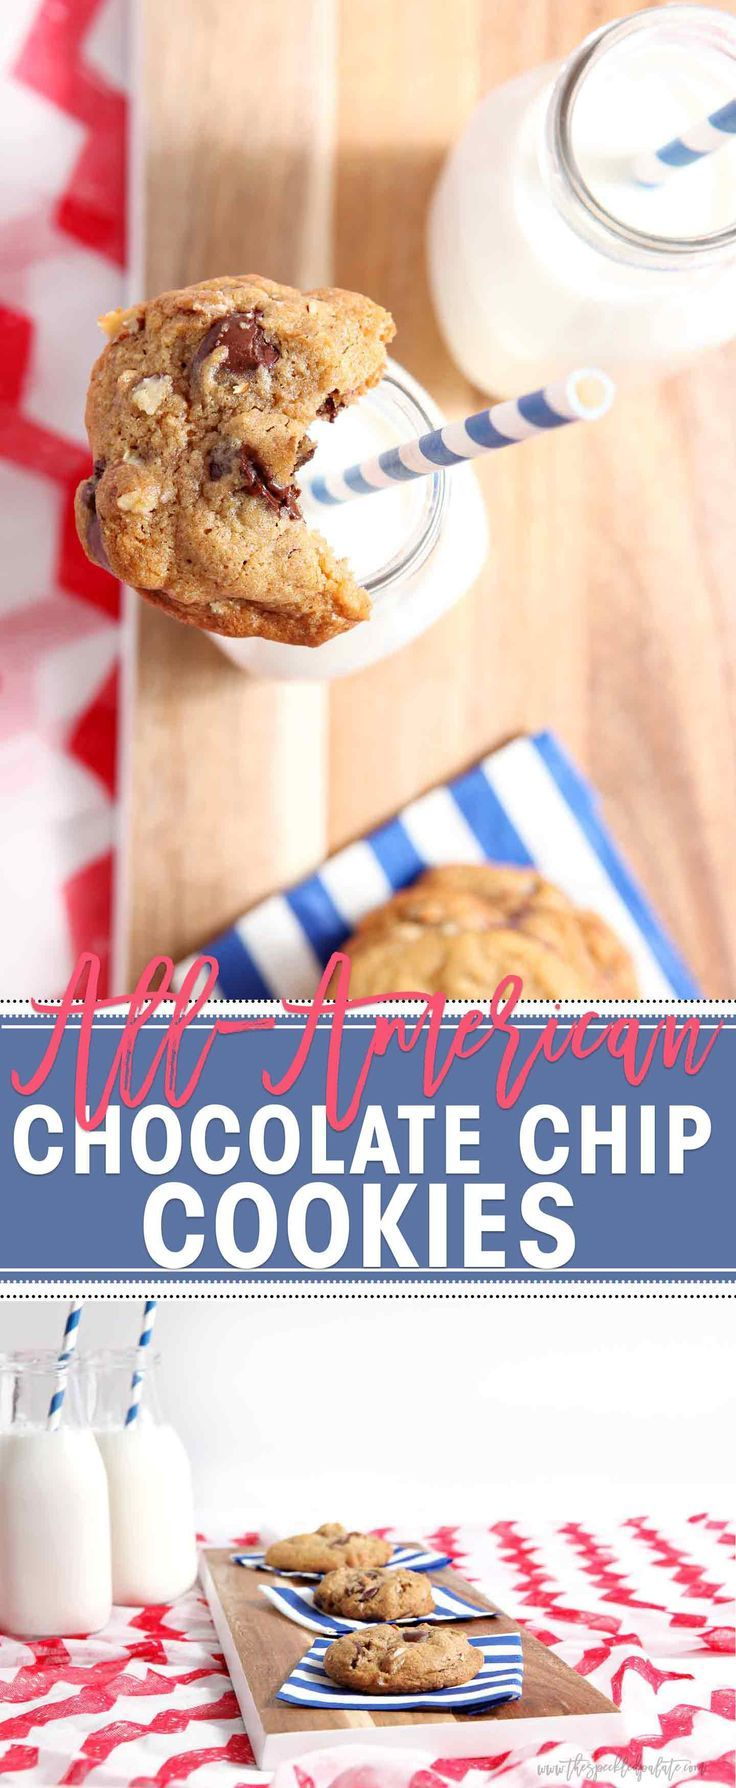 ... Cookie Recipes on Pinterest | Sandwich Cookies, Chocolate Chip Cookies